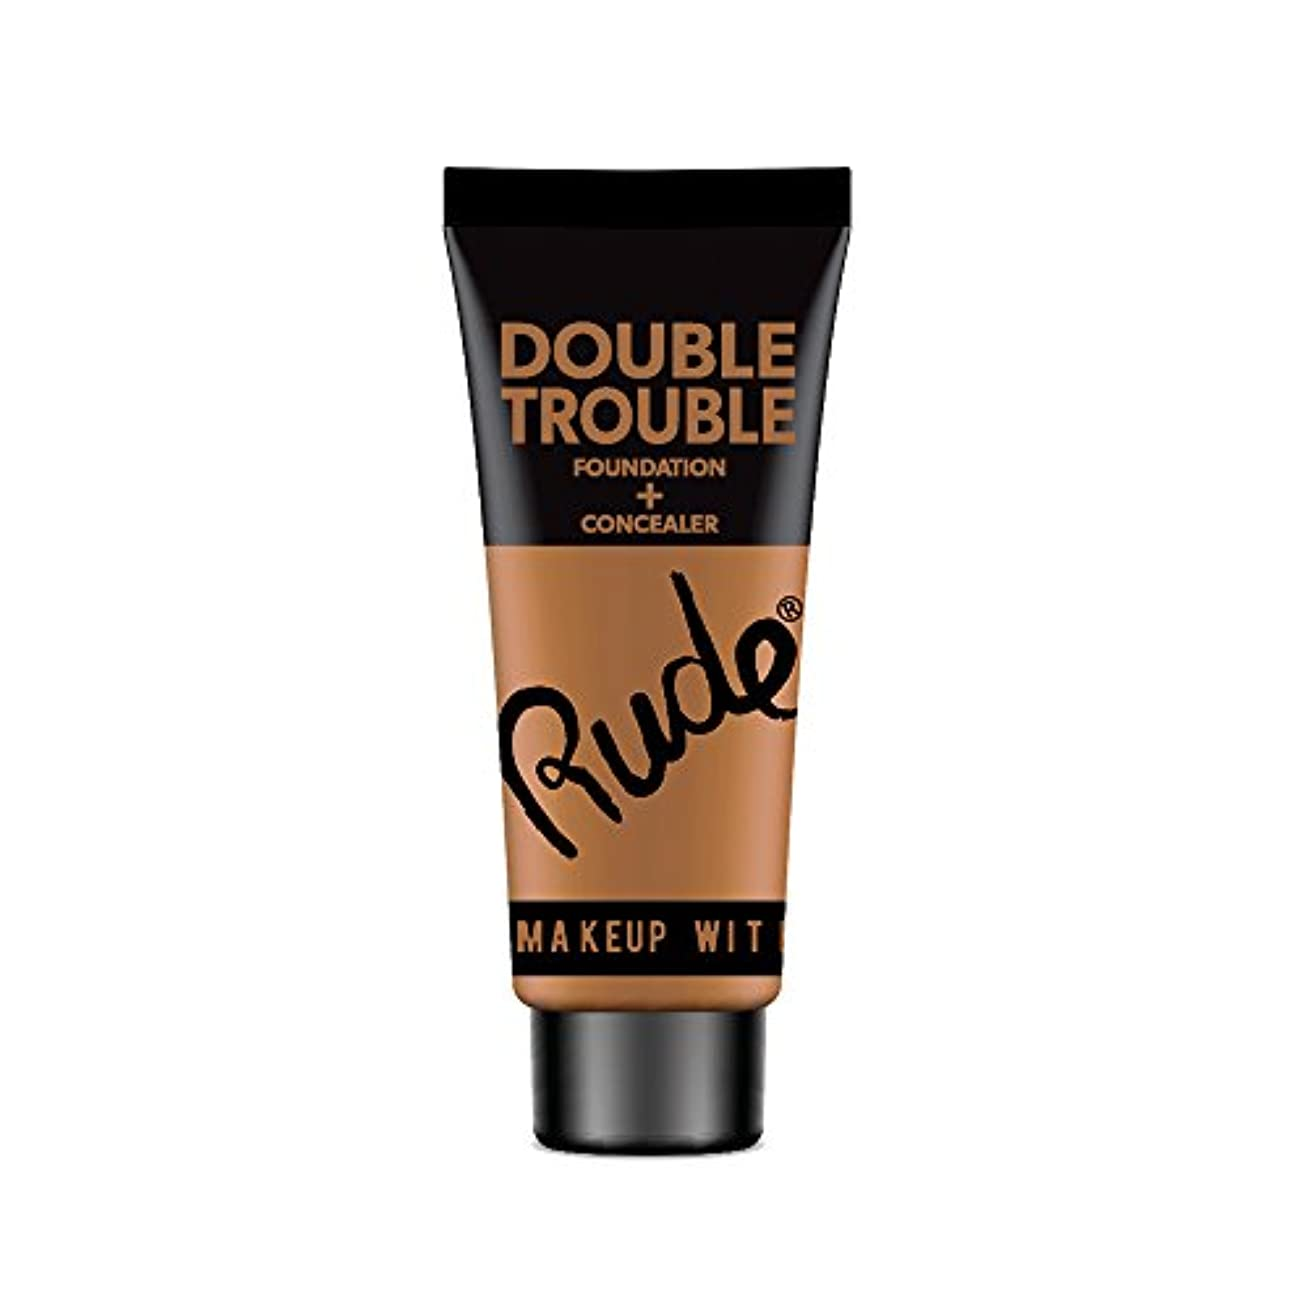 似ている垂直美徳(3 Pack) RUDE Double Trouble Foundation + Concealer - Walnut (並行輸入品)